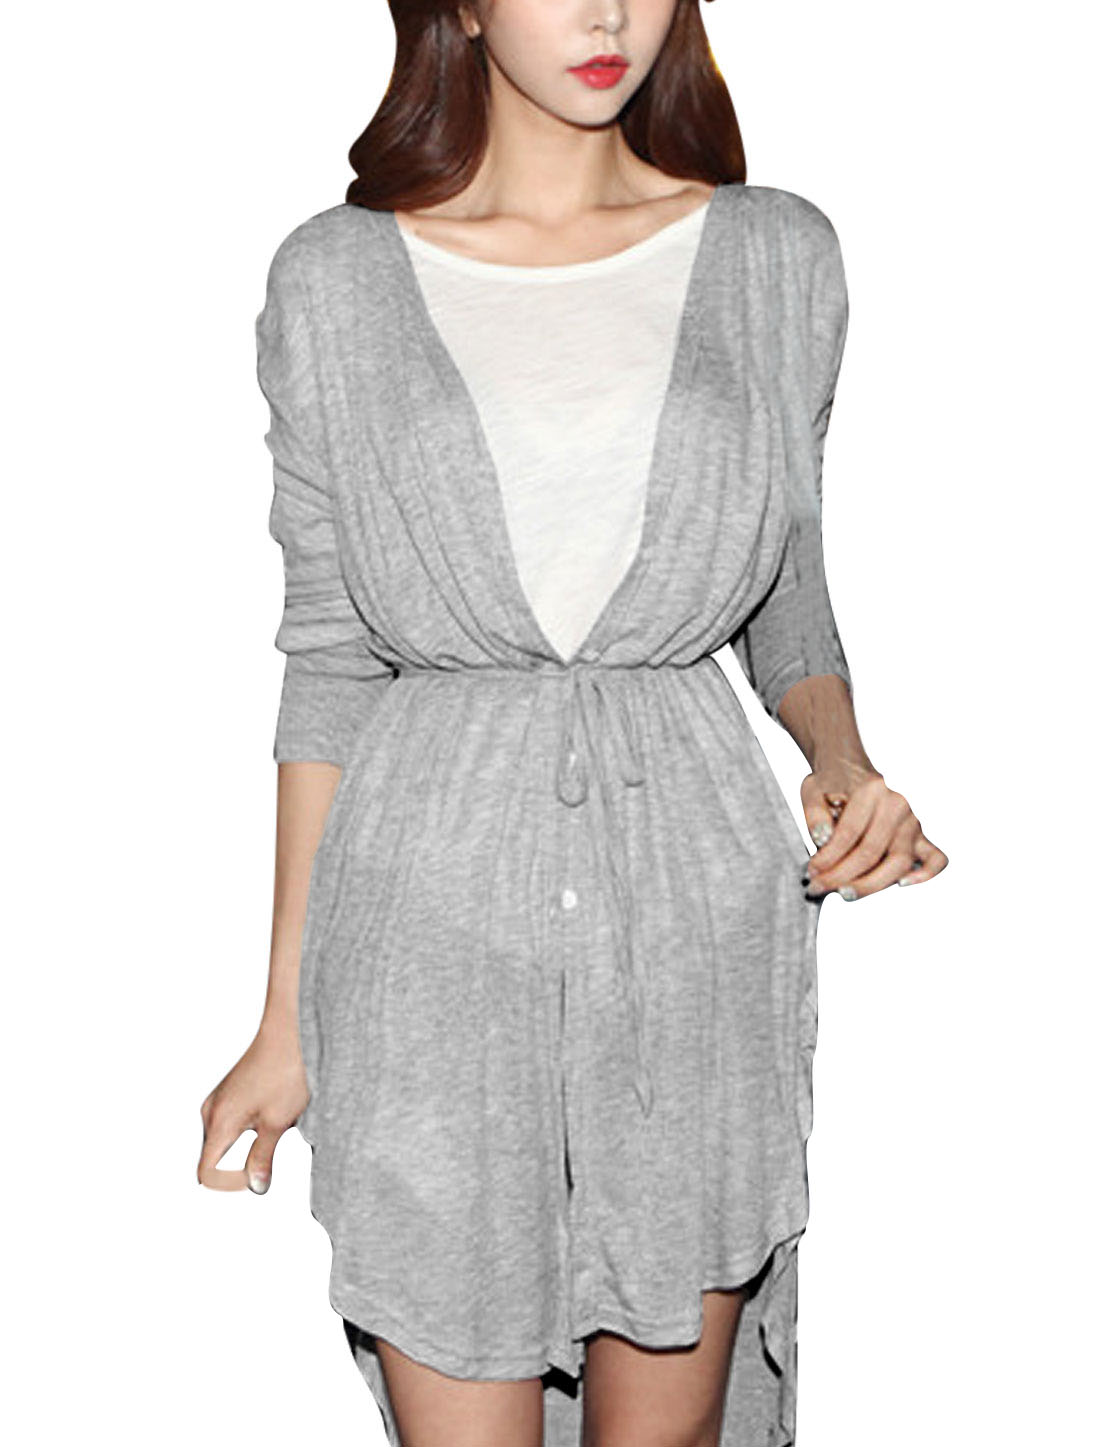 Lady Single Breasted Asymmetric Hem Fashion Tunic Top w String Waist Light Gray S